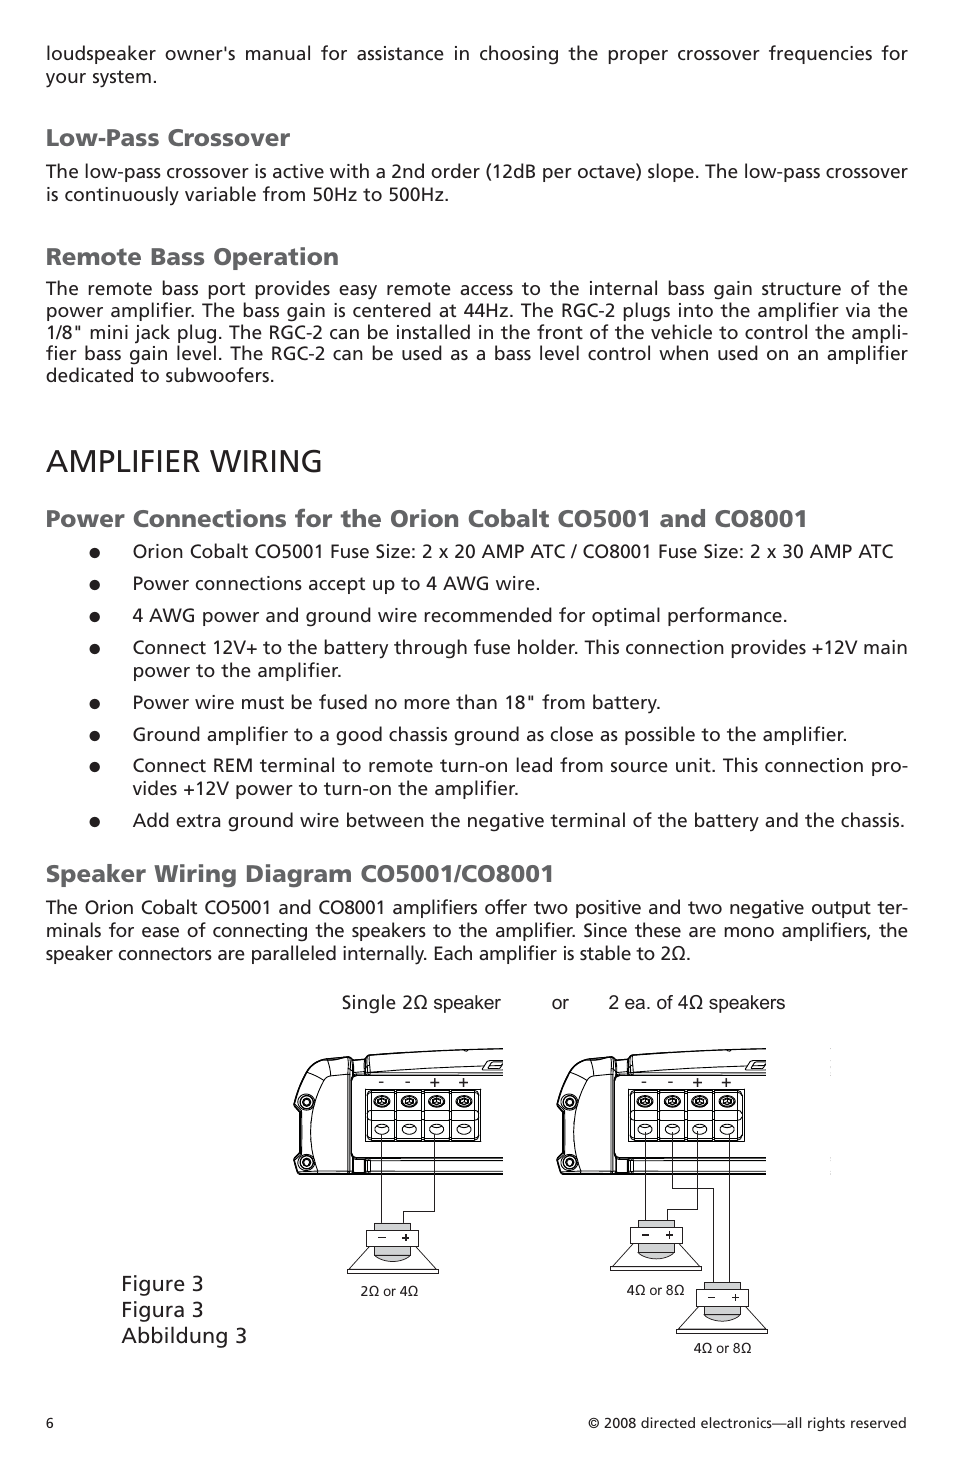 hight resolution of orion amplifier wiring diagram schema wiring diagram amplifier wiring low pass crossover remote bass